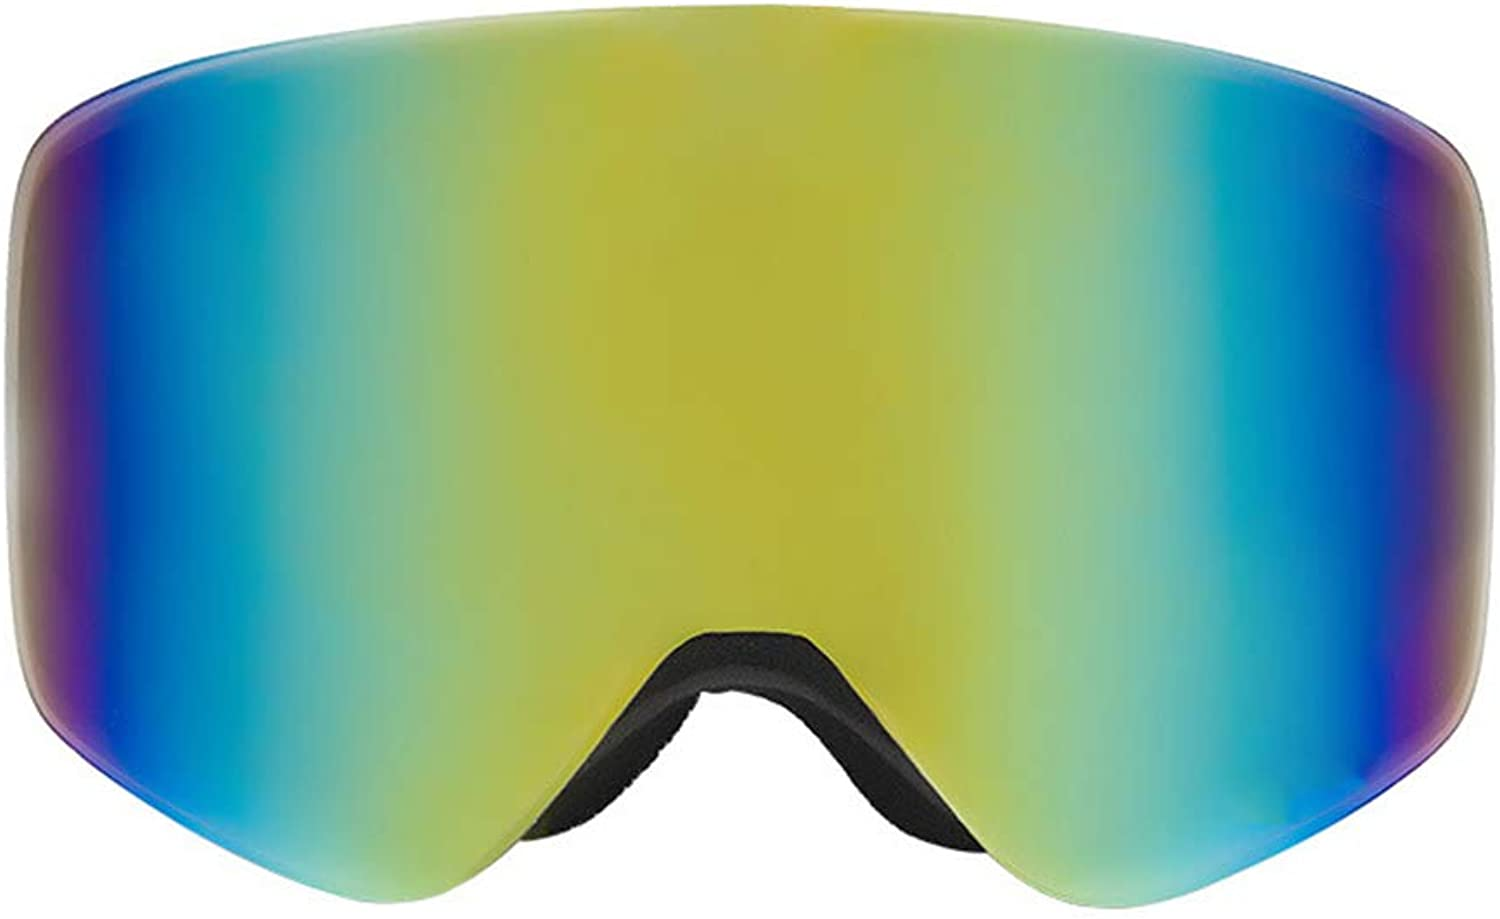 Yxx max Ski Glasses Men And Women Double-layer Anti-fog Outdoor Windproof Goggles Single And Double Board